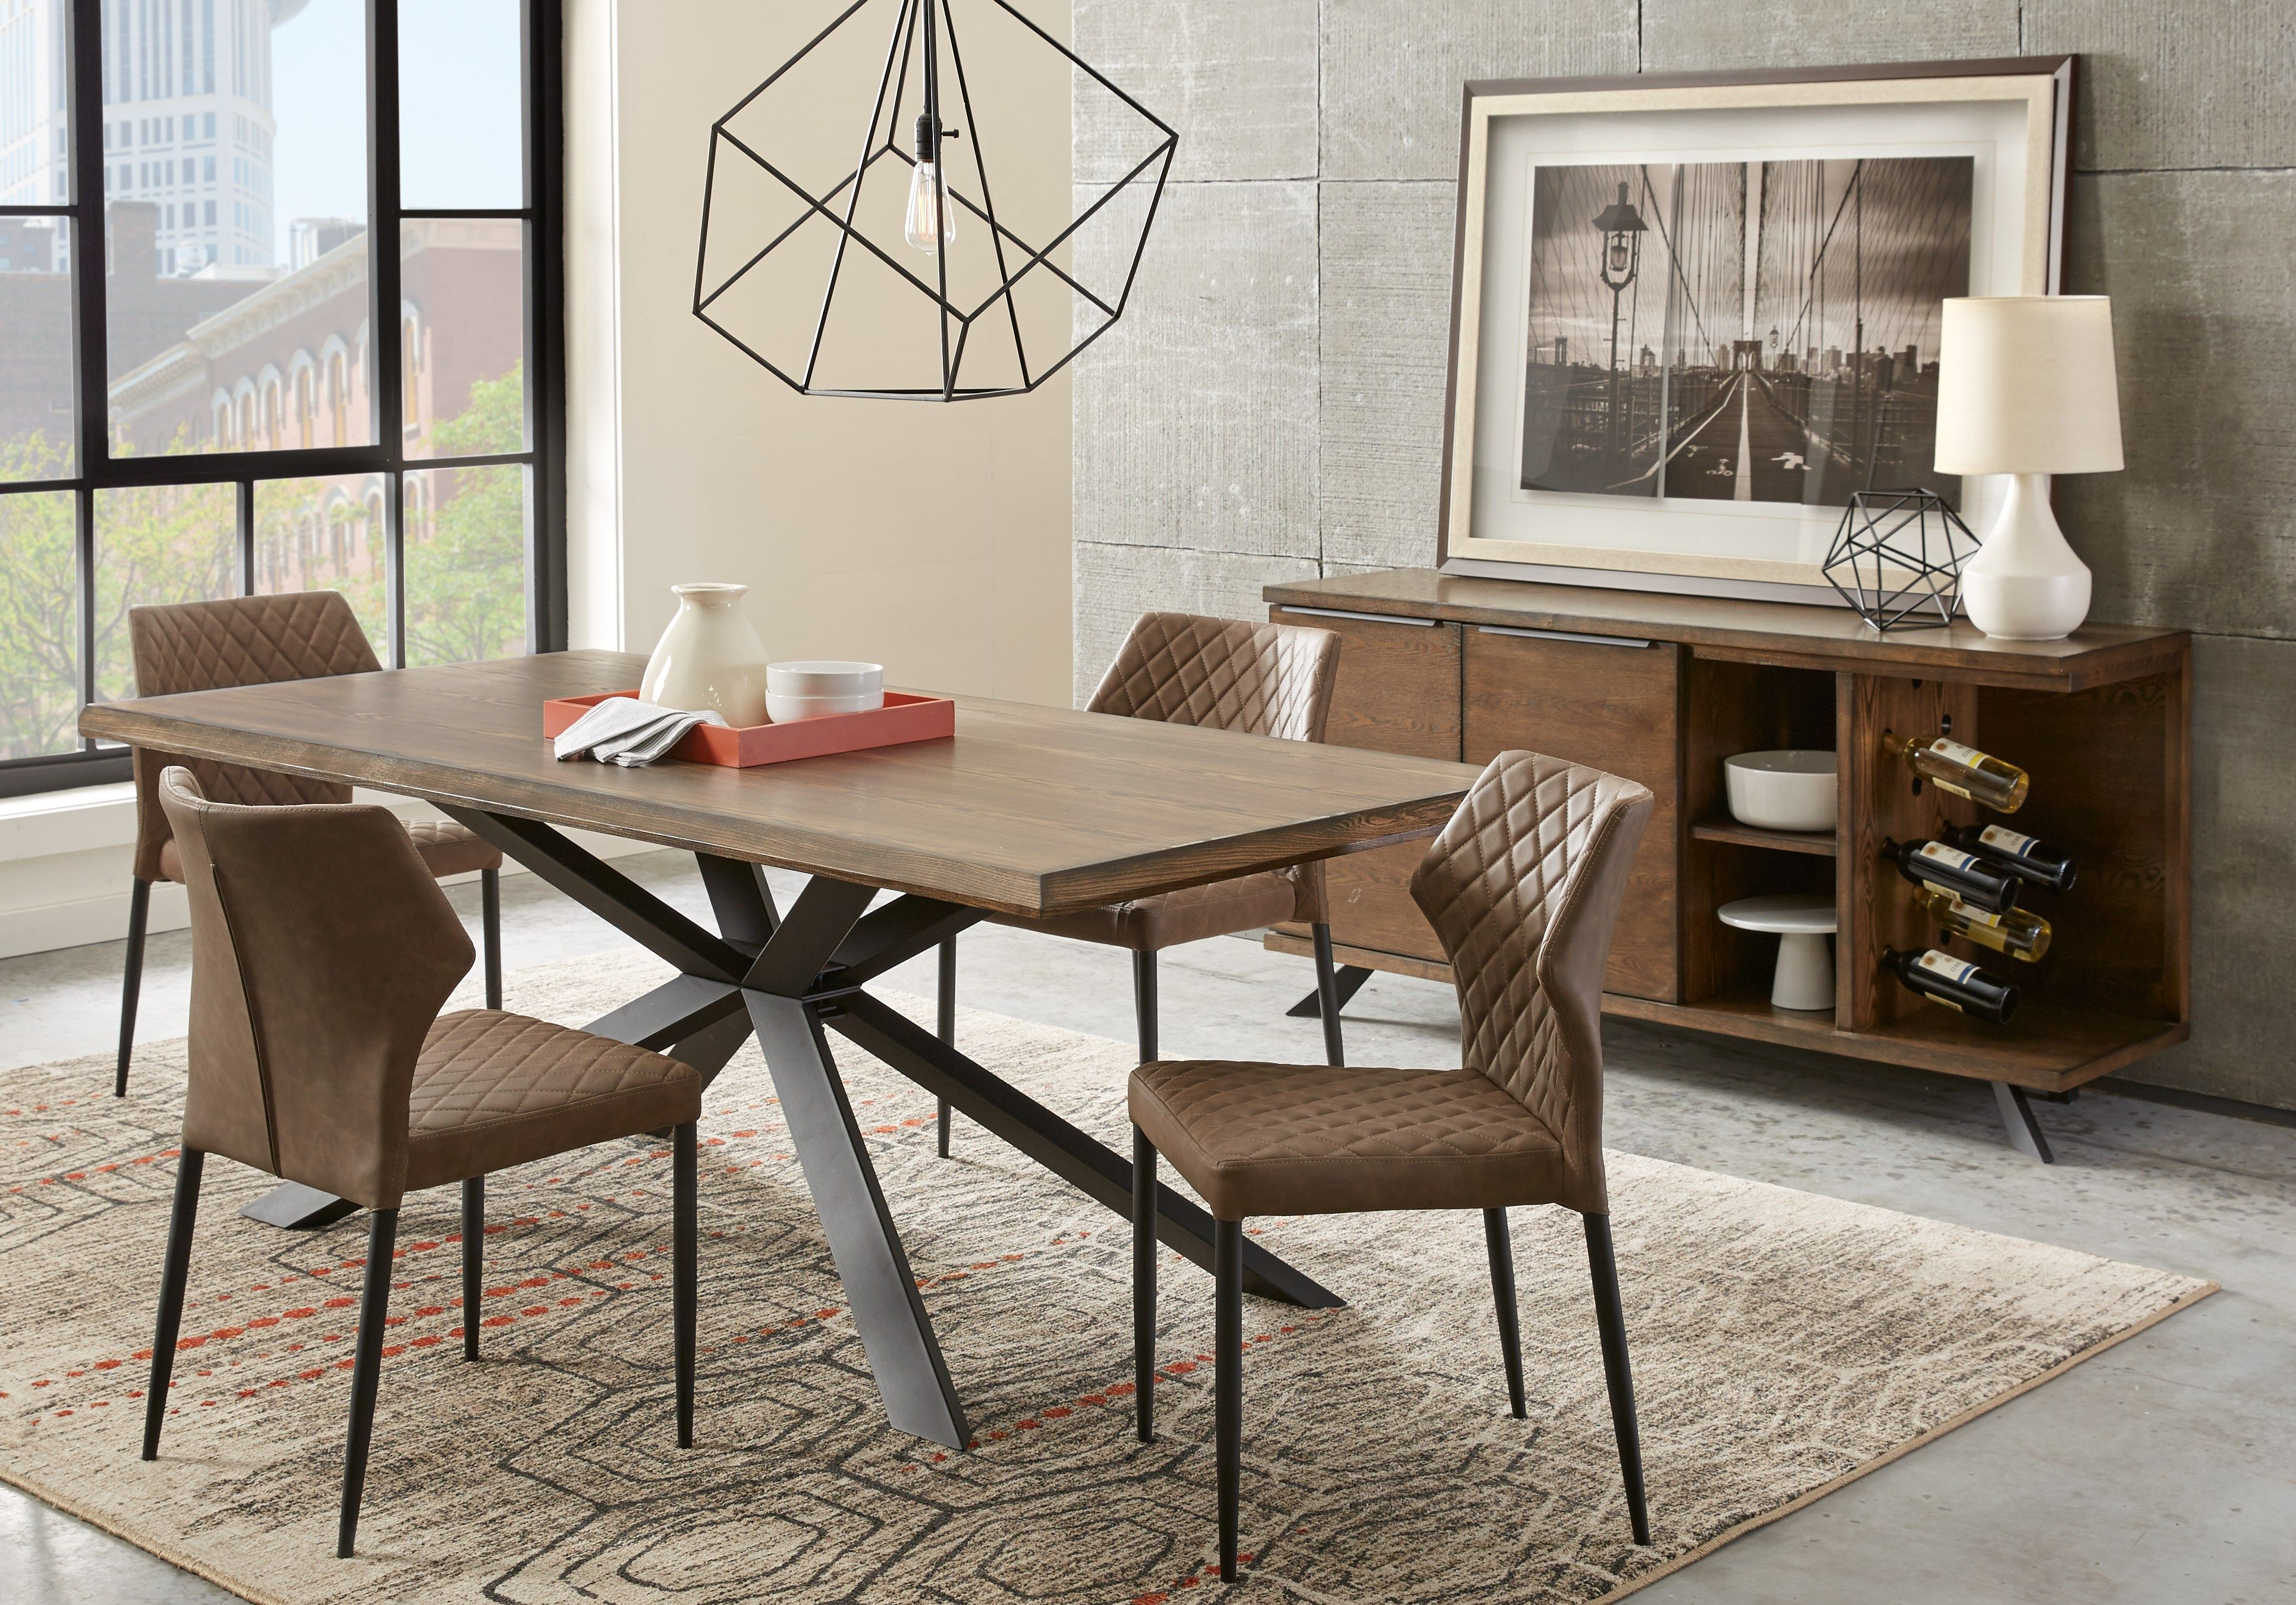 Alessi Brown 5 Pc Dining Room 777 0 5pc Set Includes Dining Table Side Chair 4 Find Affordable Di Dining Room Sets Dining Room Design Living Room Leather